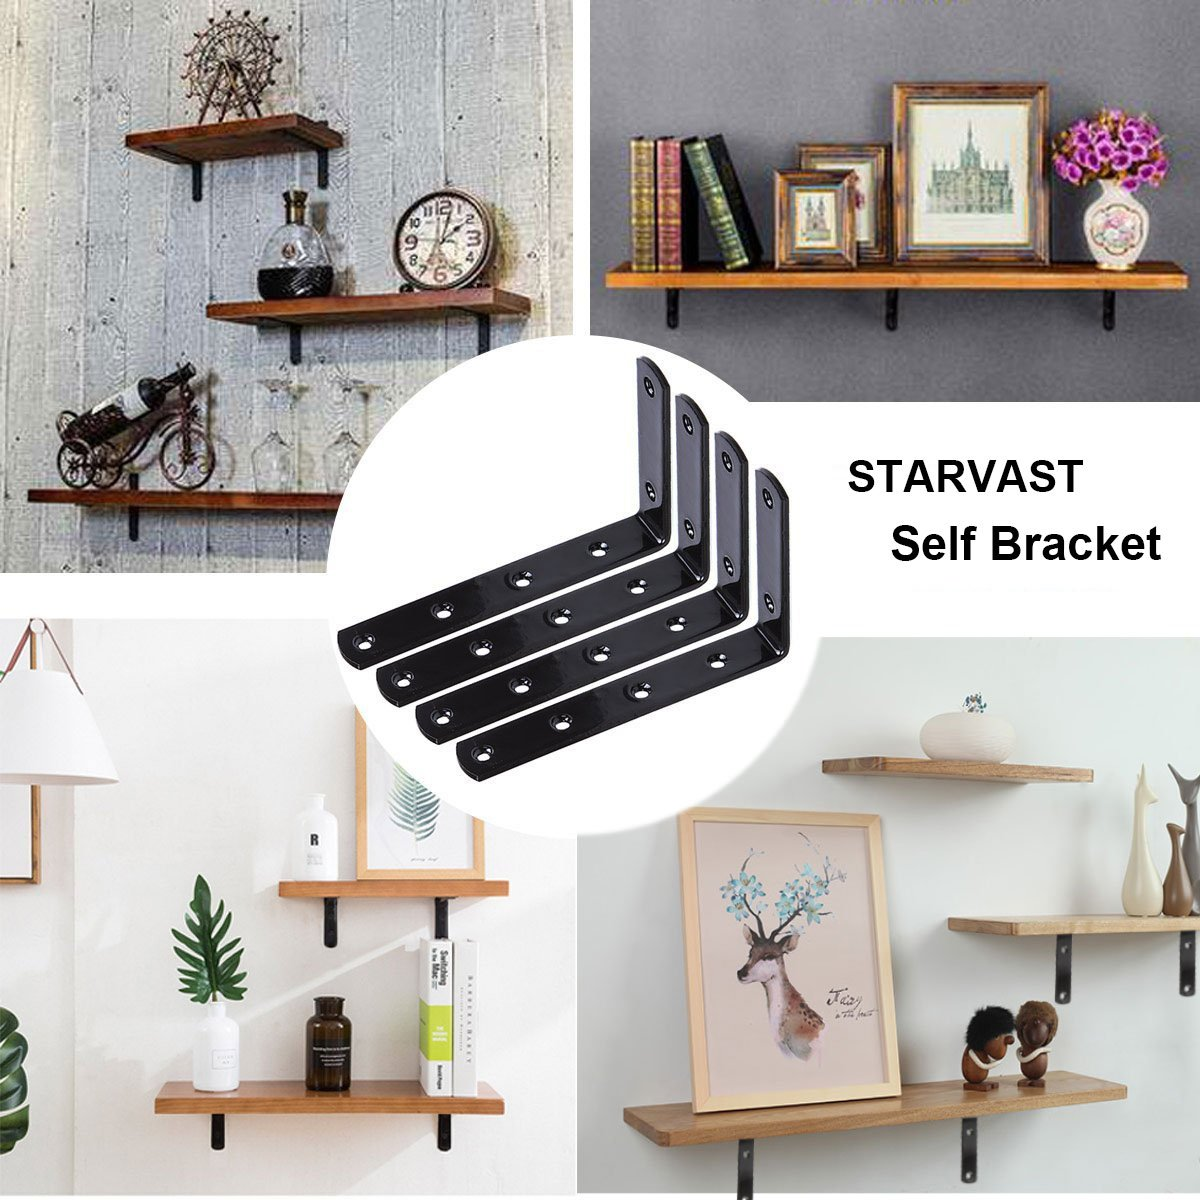 8 Pcs Shelf Brackets Black Stainless Steel L Shaped Corner Bracket 3mm Thick Heavy Duty Joint Right Angle Bracket Support Wall Hanging By STARVAST (Come with Screws) by STARVAST (Image #5)